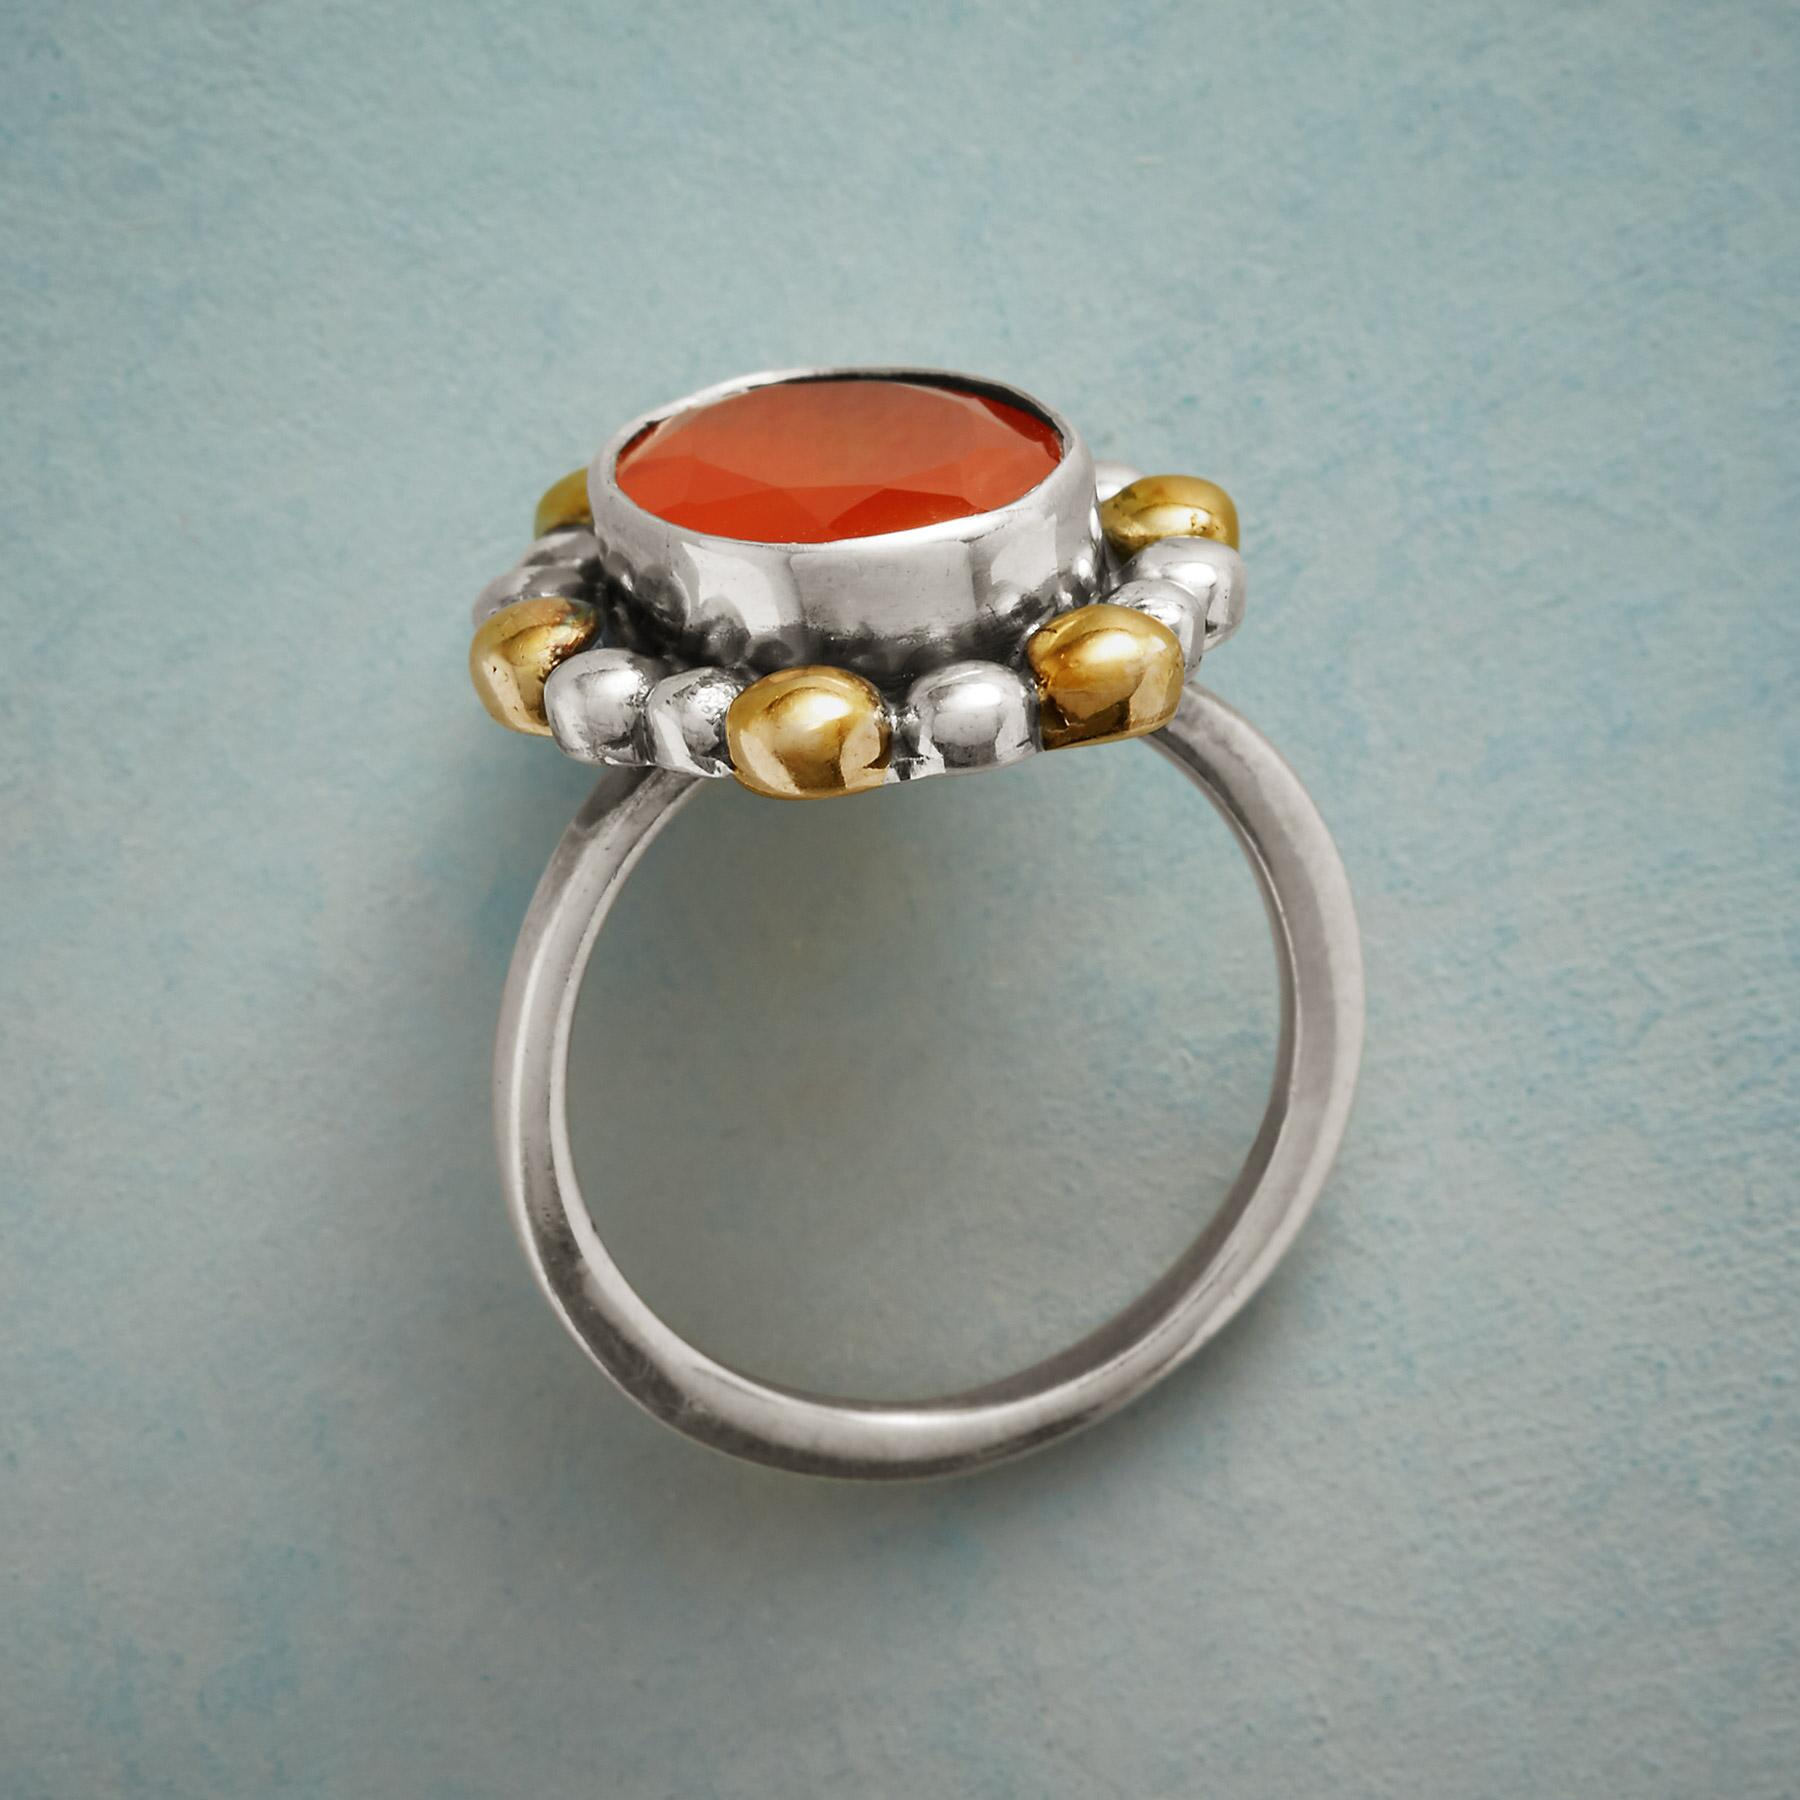 ANTIQUE FRAME RING: View 2